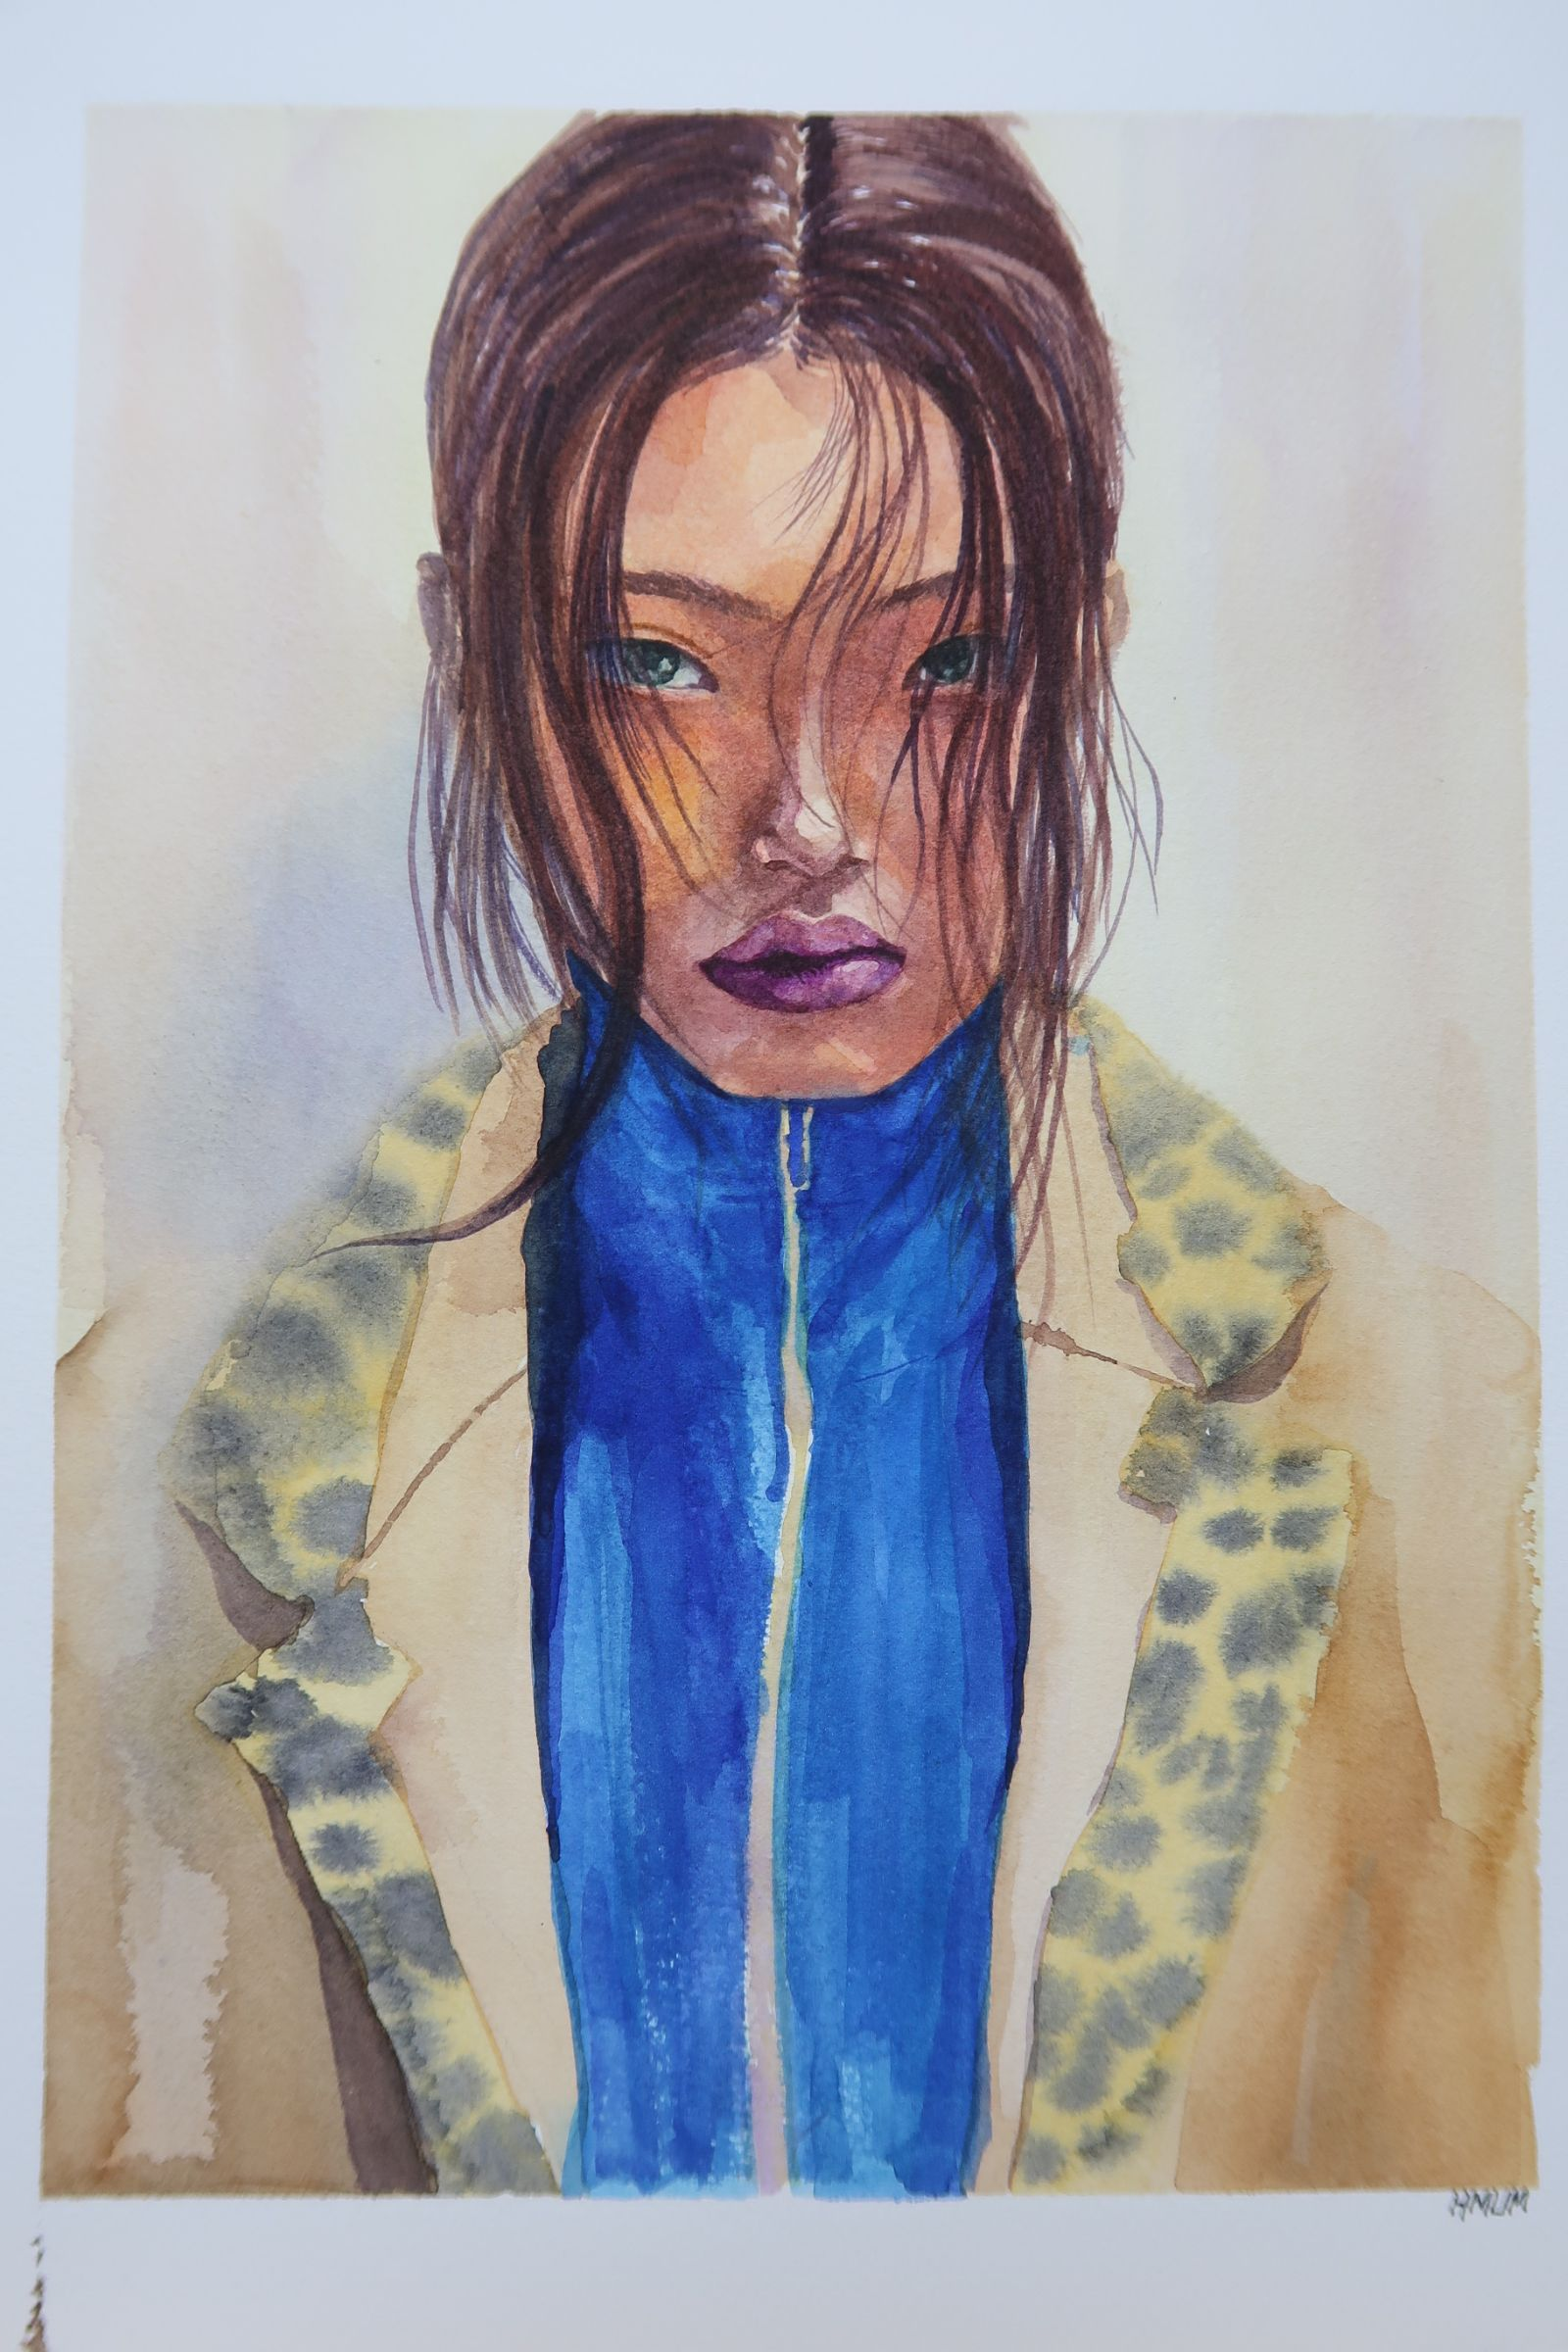 Watercolor. Fabriano Artistico. 300g/. Cold press. Reference Photo by Korean Model Bae Yoon Young's